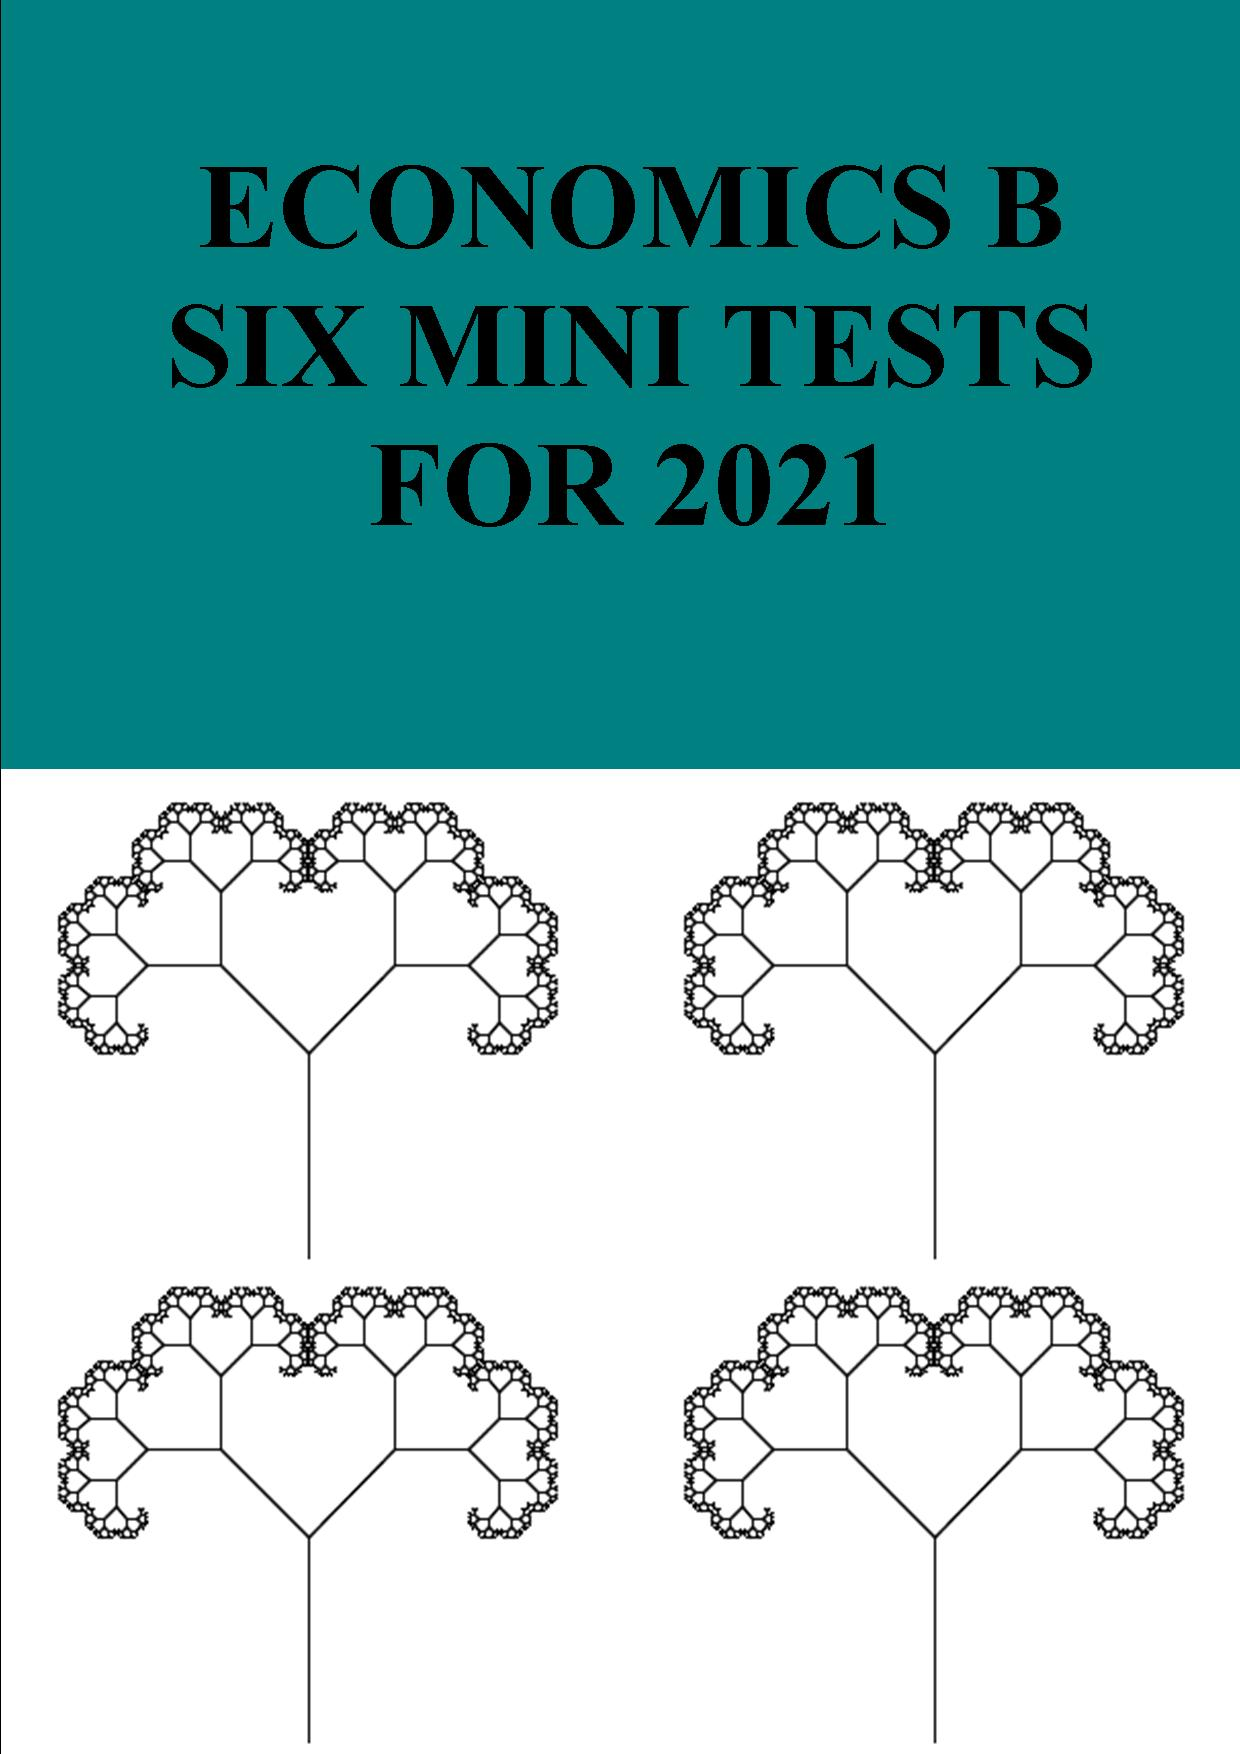 Six mini tests for 2021